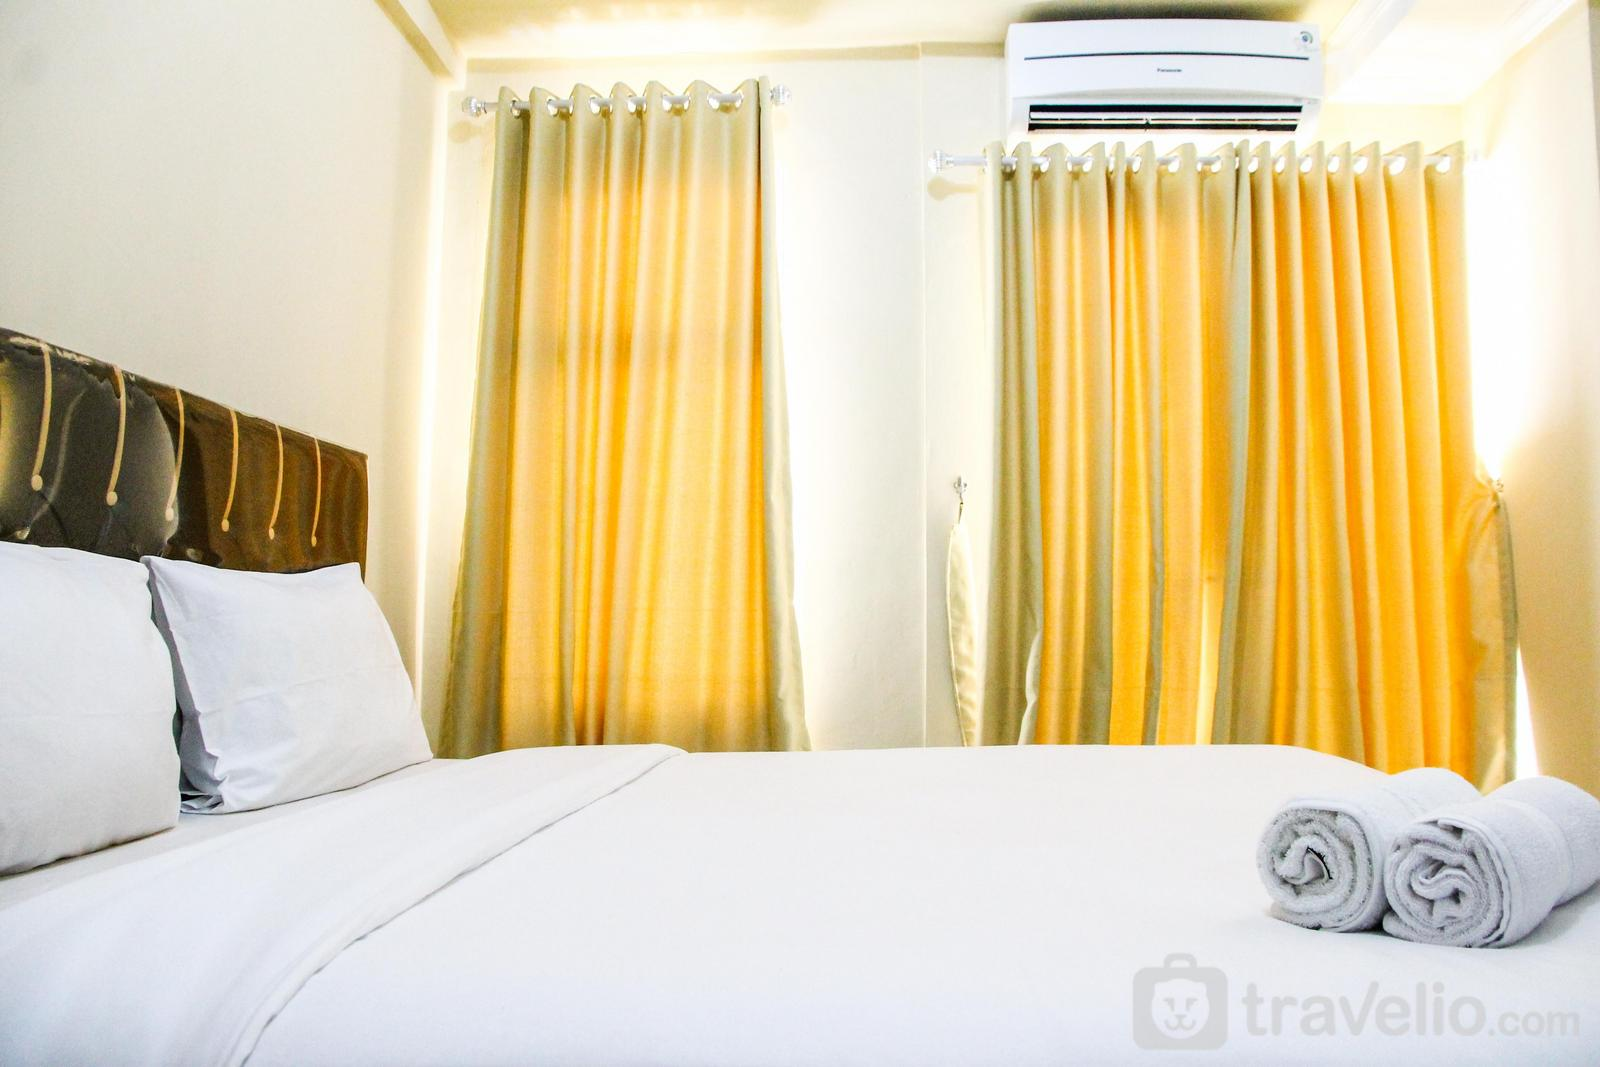 Victoria Square Tangerang - Cozy Studio Room Victoria Square Apartment By Travelio